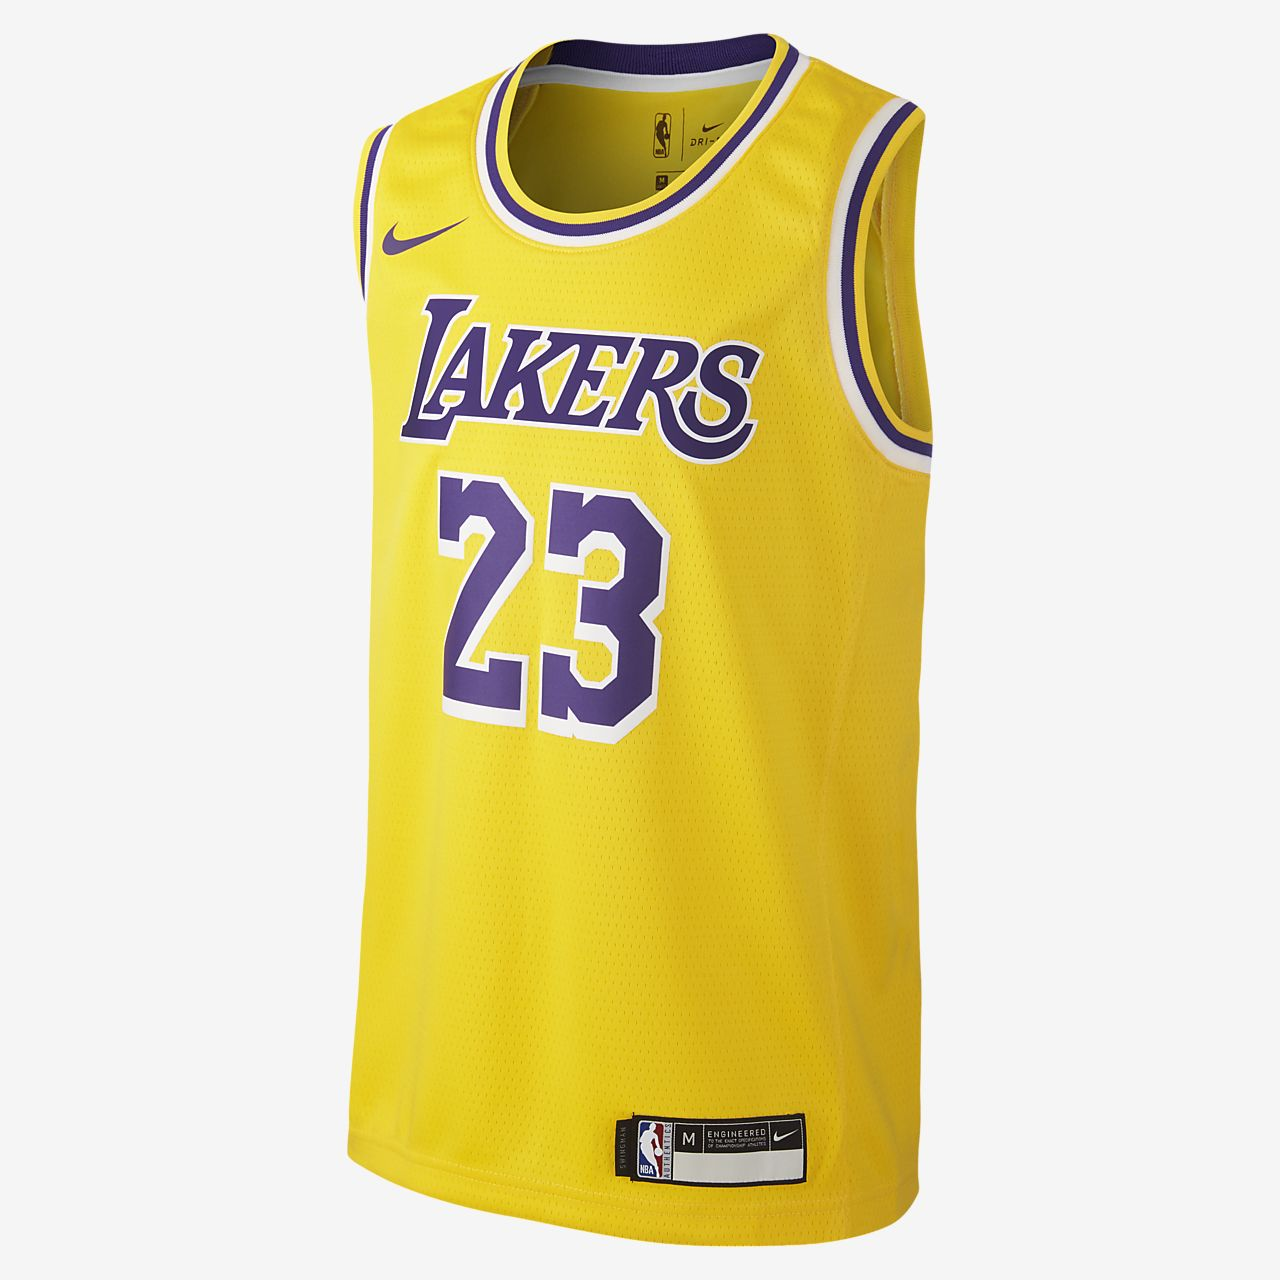 6ef17713cee Older Kids  NBA Jersey. LeBron James Los Angeles Lakers Nike Icon Edition  Swingman